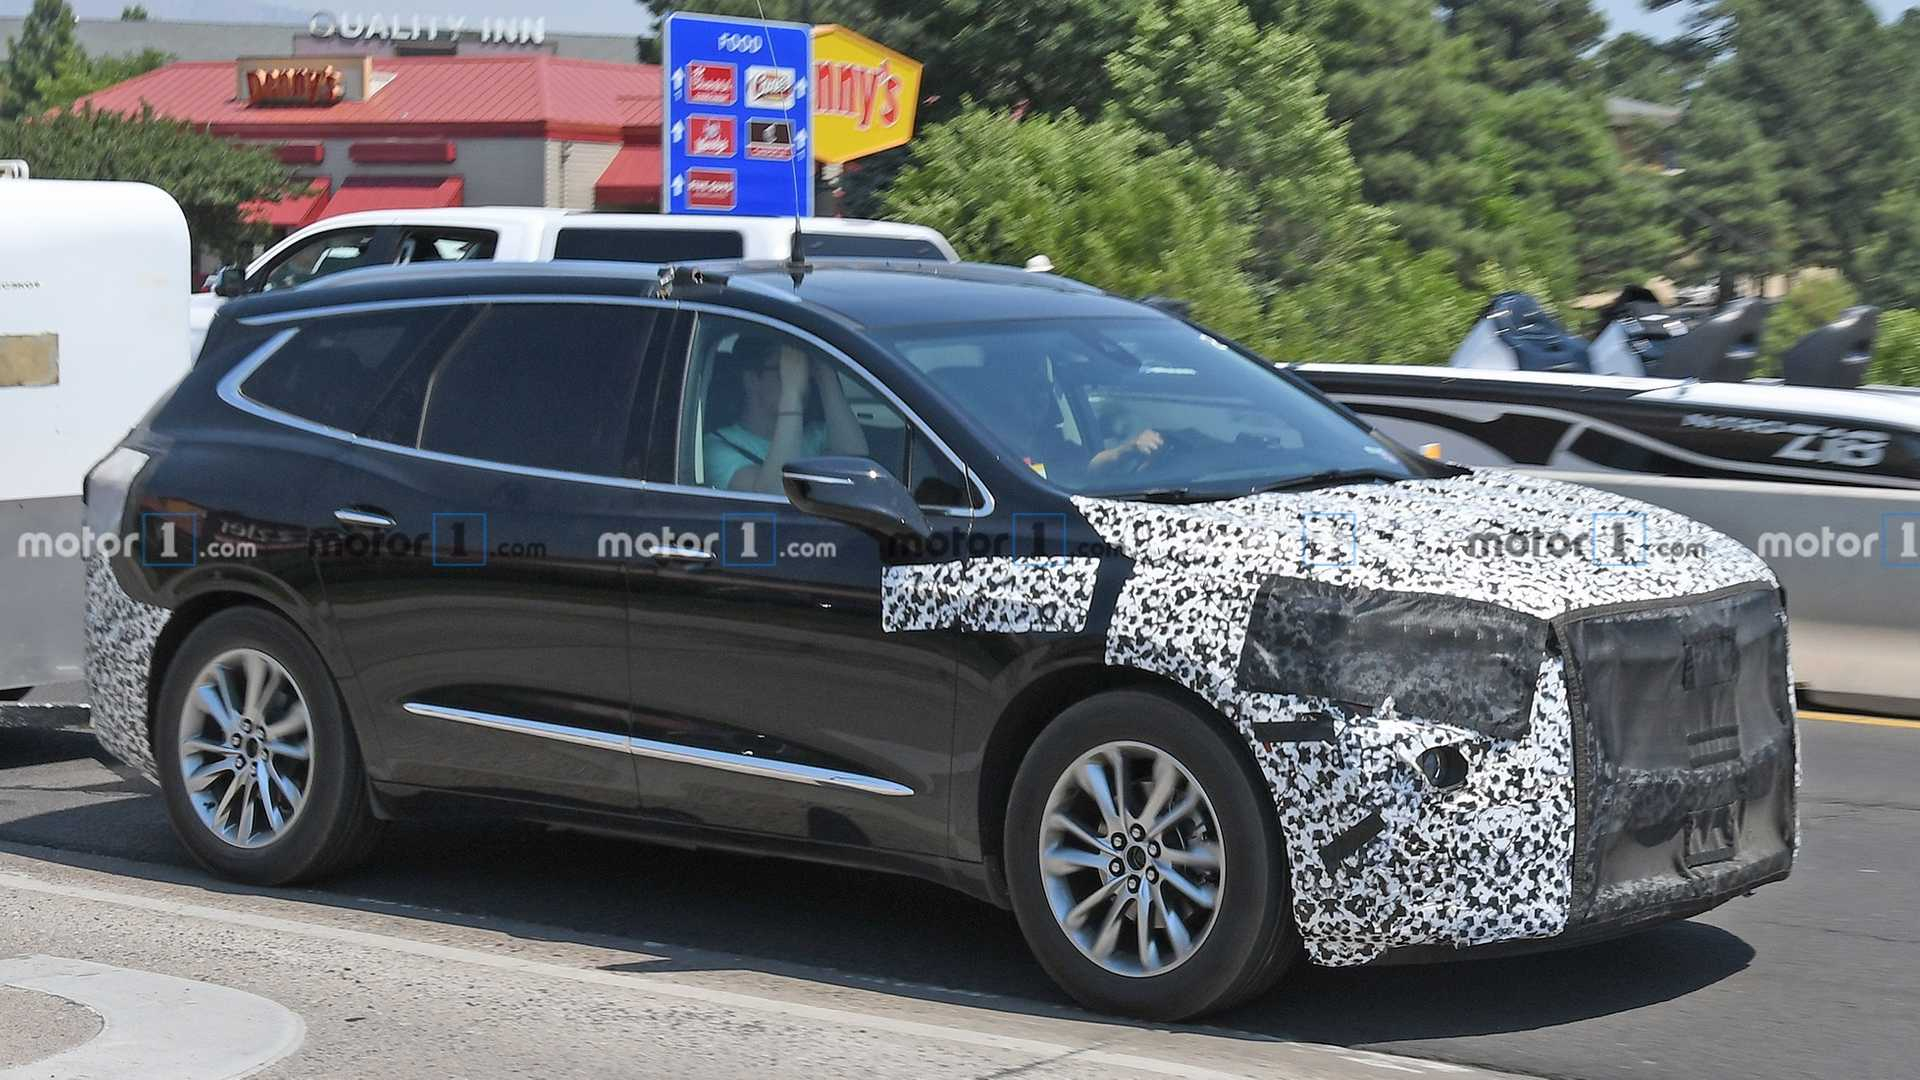 2021 Buick Enclave Spied For The First Time New 2021 Buick Enclave New Colors, Oil Type, Options